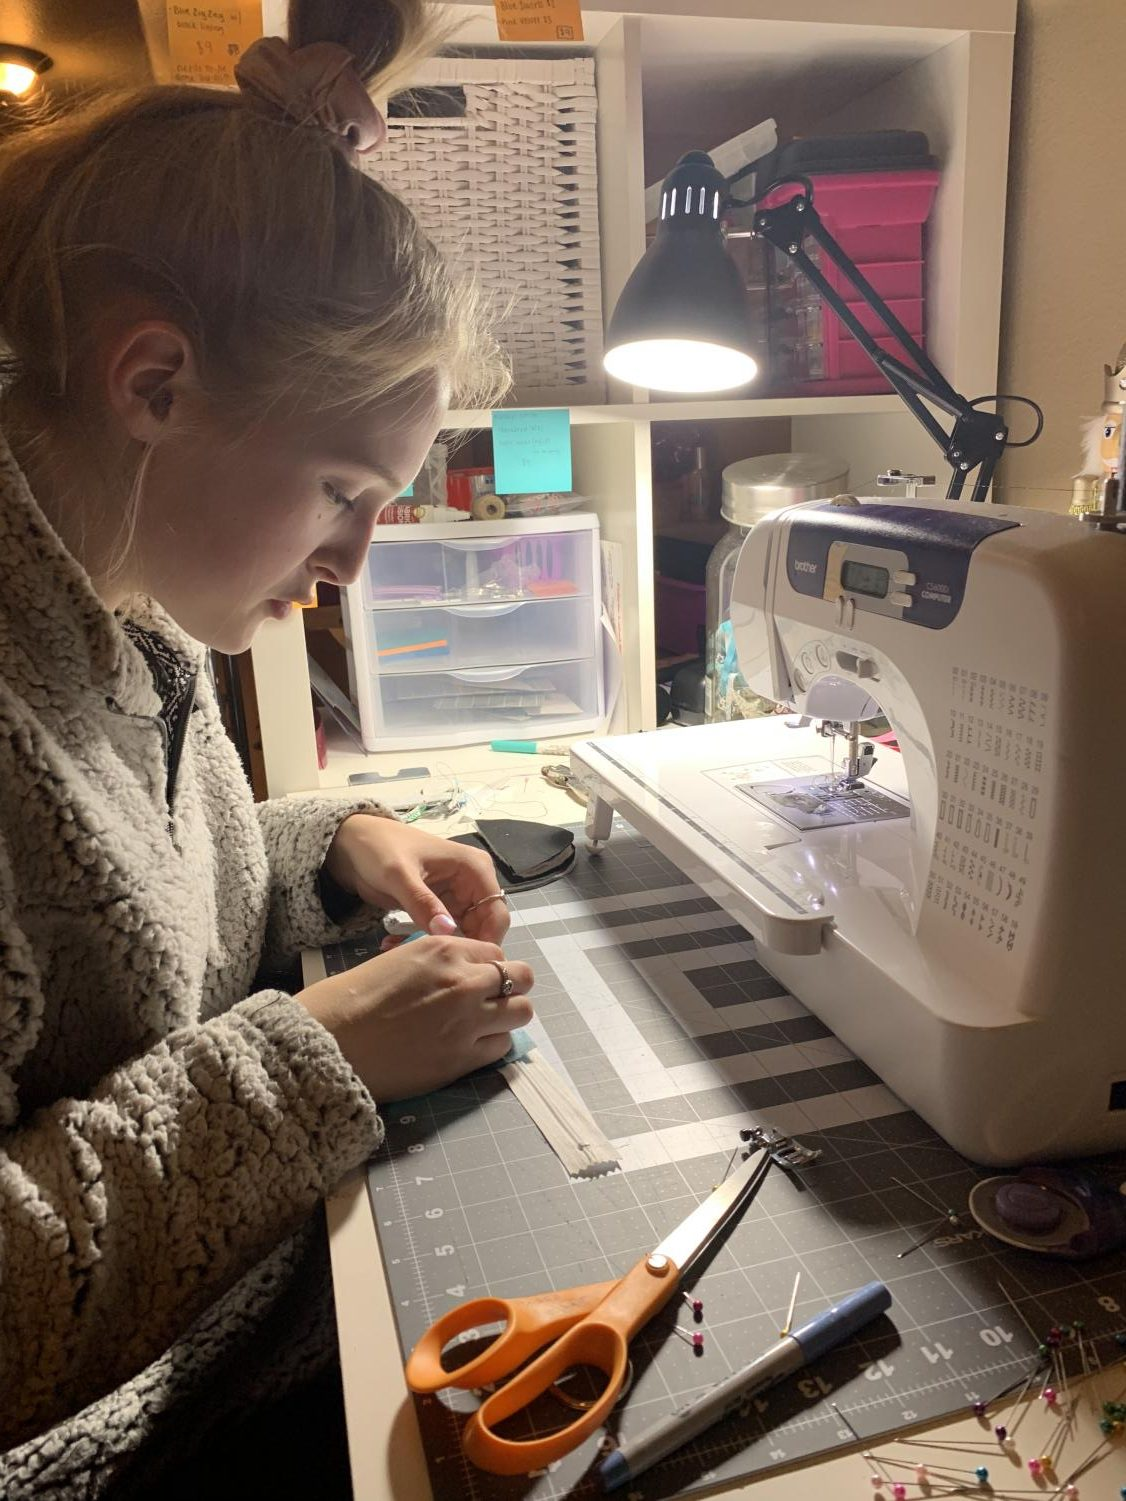 Junior Maisie Gelhar works steadily on creating and finishing one of her many orders. Photo courtesy of Maisie Gelhar.